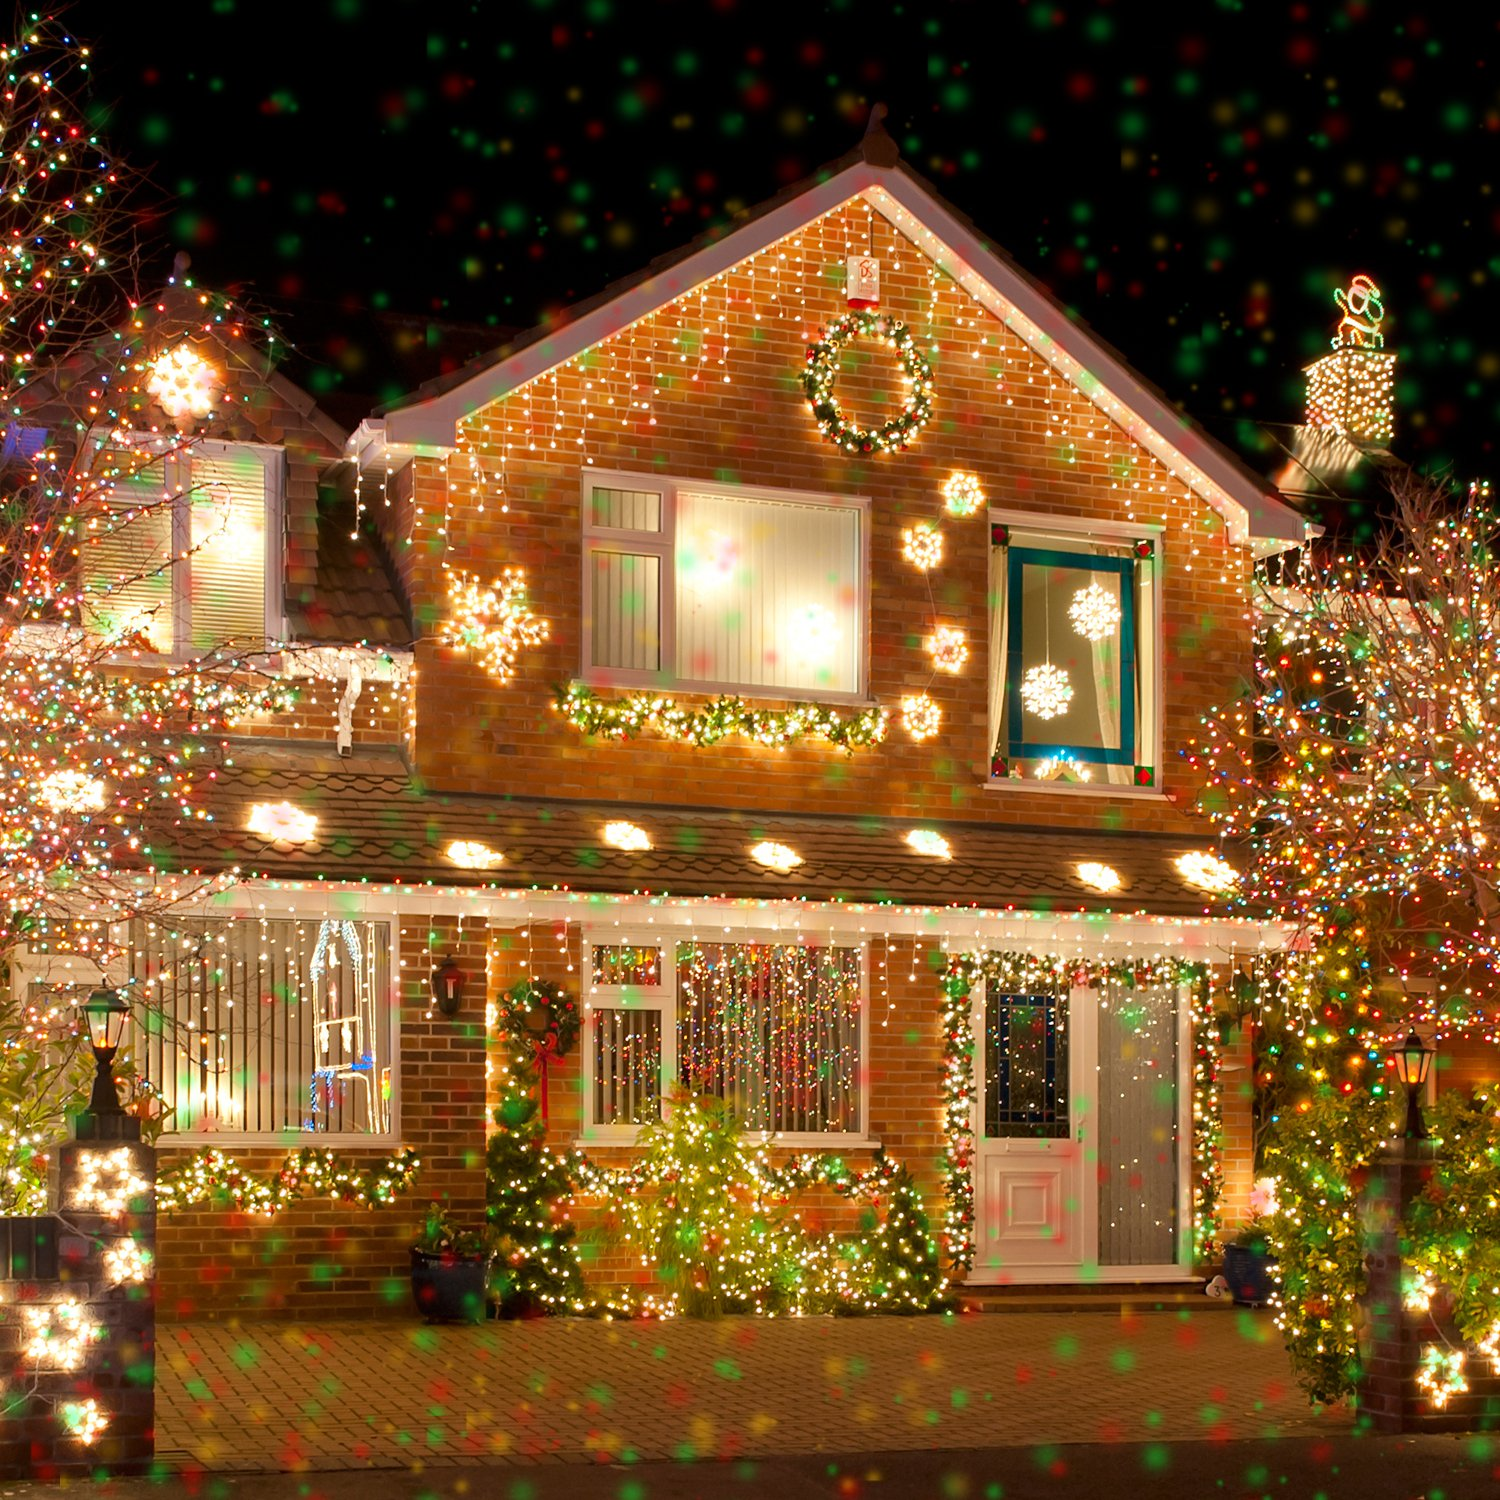 Christmas Lights Projector – Multicolor Rotating Led Christmas Shower lights, 10PCS Pattern Waterproof Lens Christmas Projector Lights Outdoor / Indoor for Celebration, Garden Decorations and more by Novapolt (Image #5)